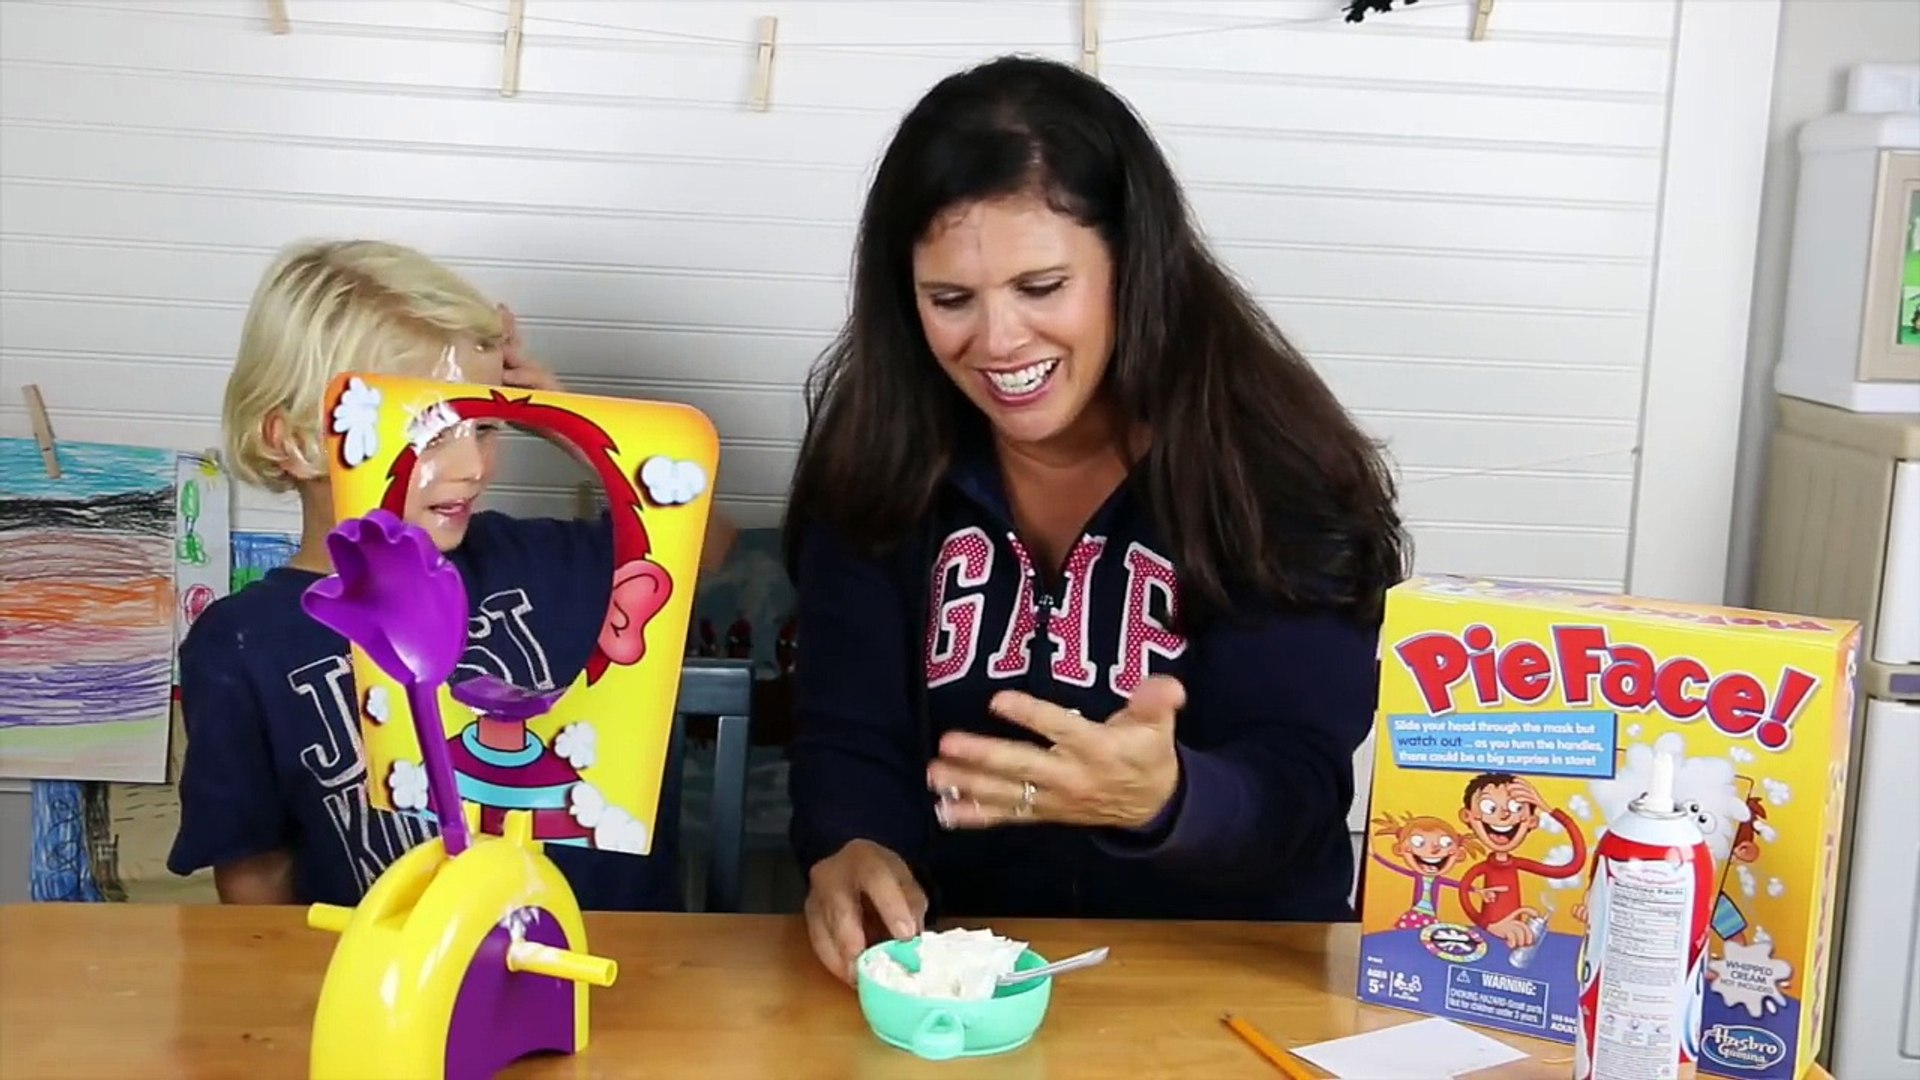 Pie Face - Funniest Game for Kids Ever- HOT HOLIDAY TOY!